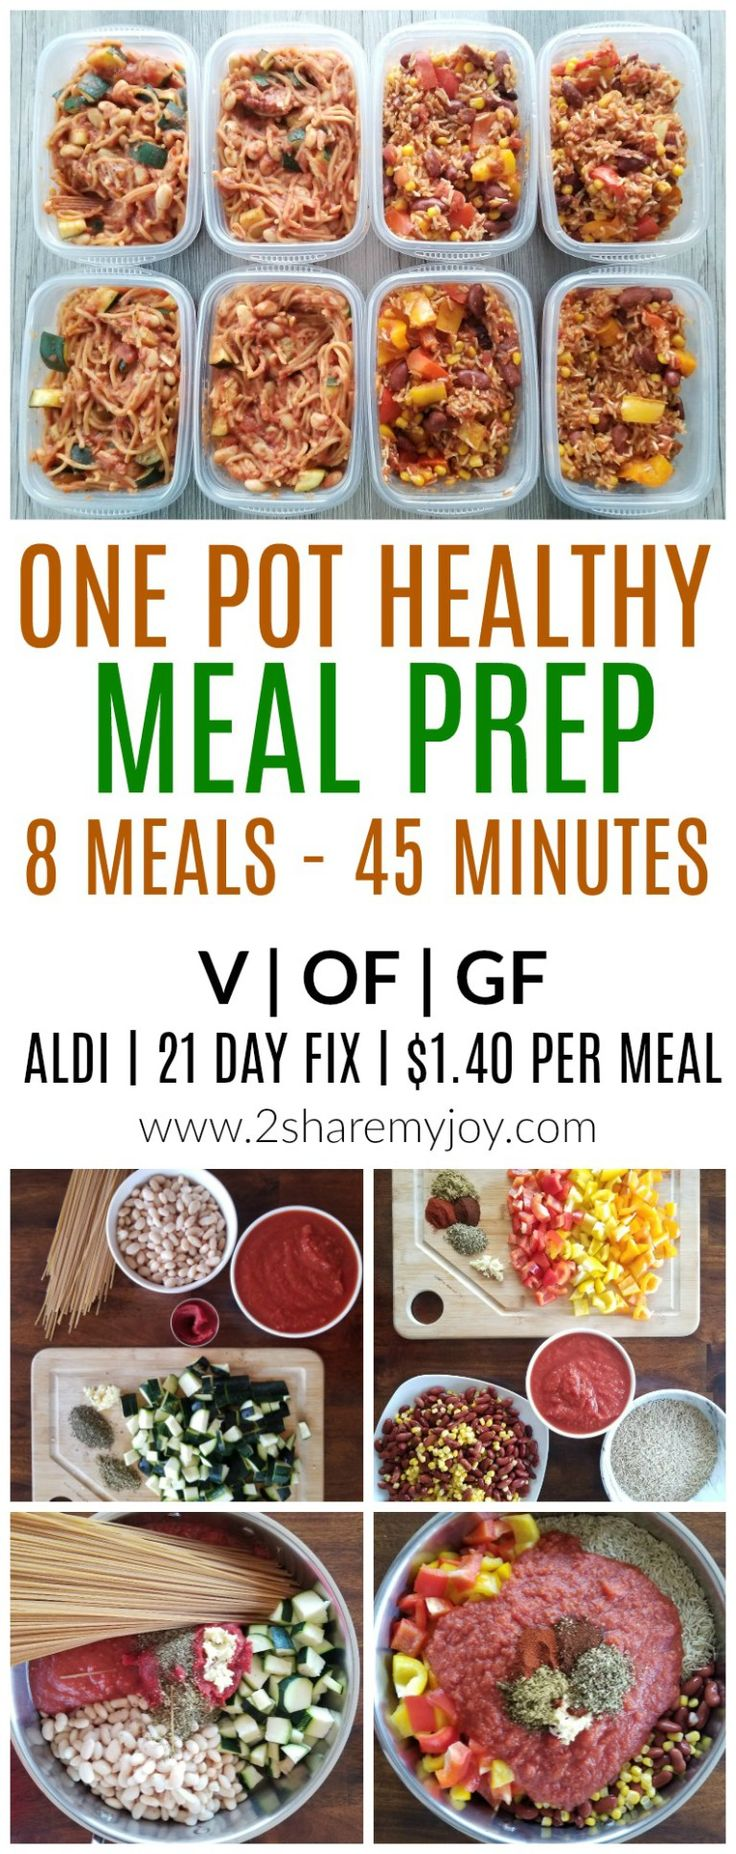 Vegan Meal Prep (on a budget): 8 Meals under 45 Minutes for the week. If you are on a weight loss journey, bodybuilding or simply want to eat healthy, these healthy whole food plant based one pot meals make delicious easy and cheap dinner meals. Use this high protein plant based meal prep to save time and money on groceries. This is also simple enough for beginners and make freezer friendly lunches. Aldi and 21 day fix friendly! #mealprep #vegan #plantbaseddiet #onabudget